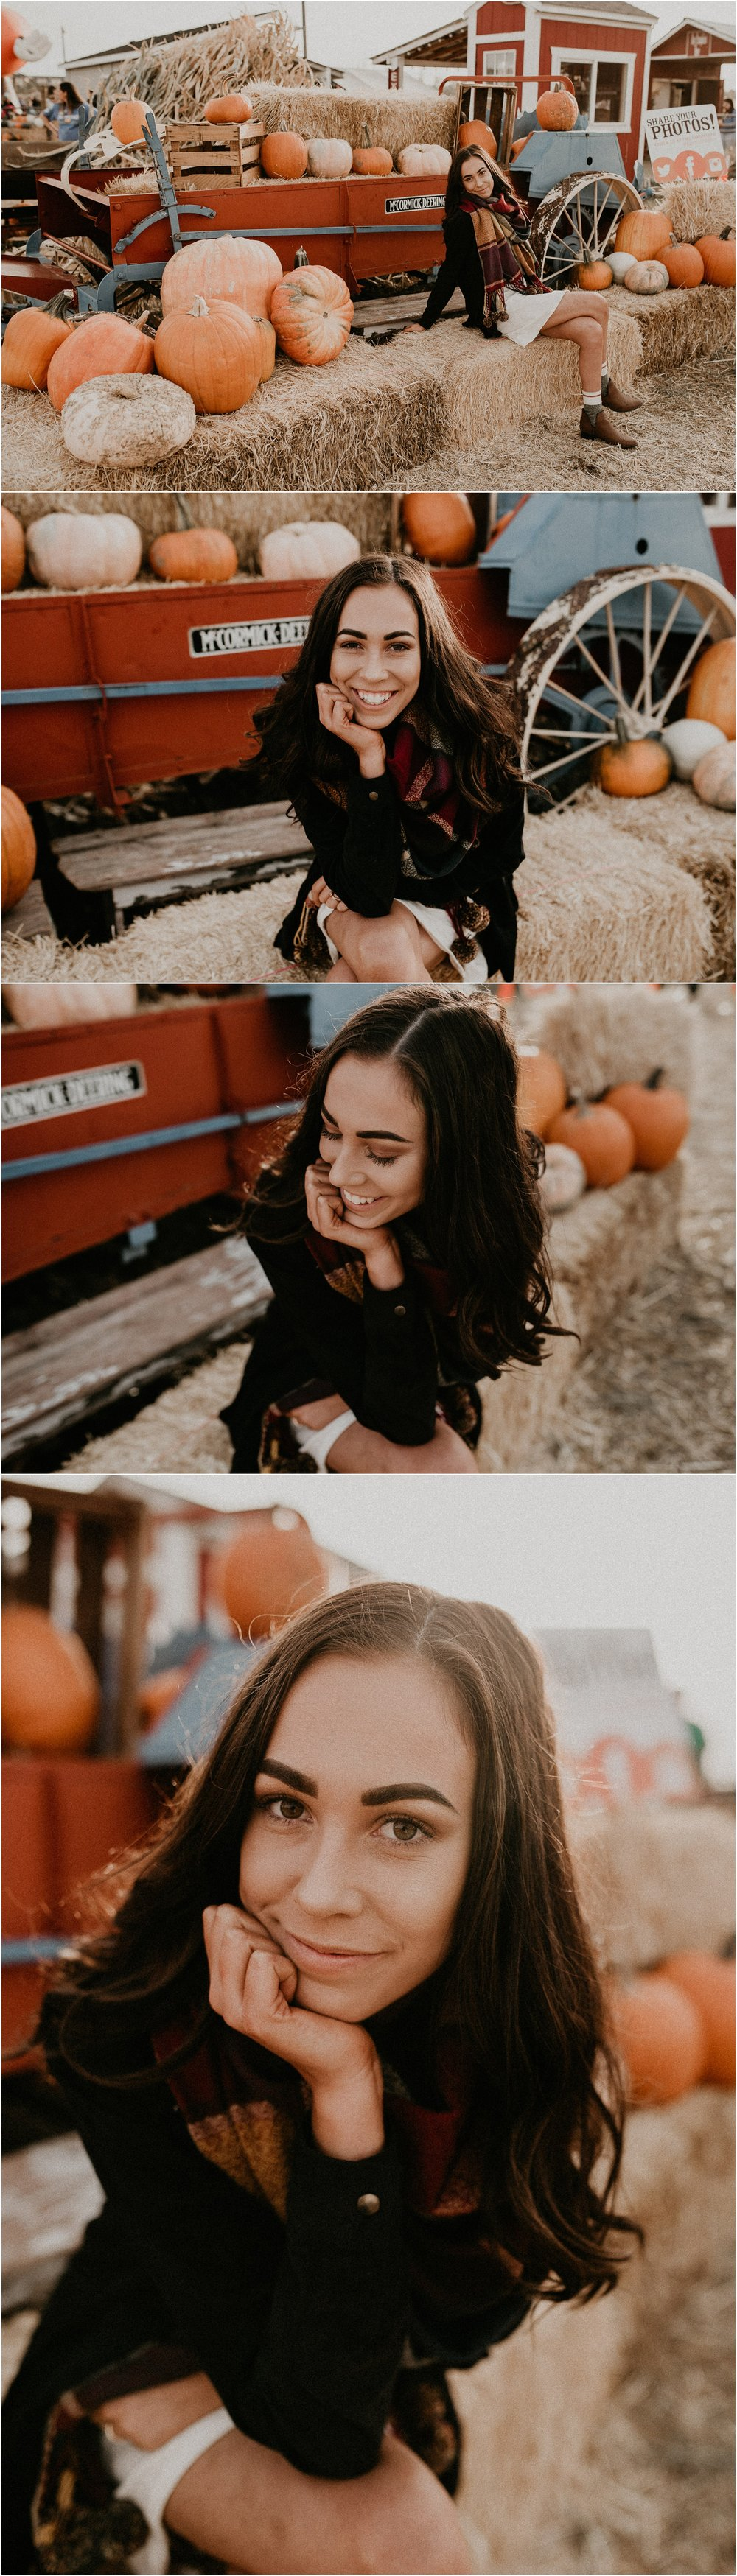 Boise Senior Boudoir Wedding Photographer Makayla Madden Photography Idaho Farmstead Corn Maze Fall Portrait Outfit Ideas Inspiration Plaid Scarf Pumpkin Patch